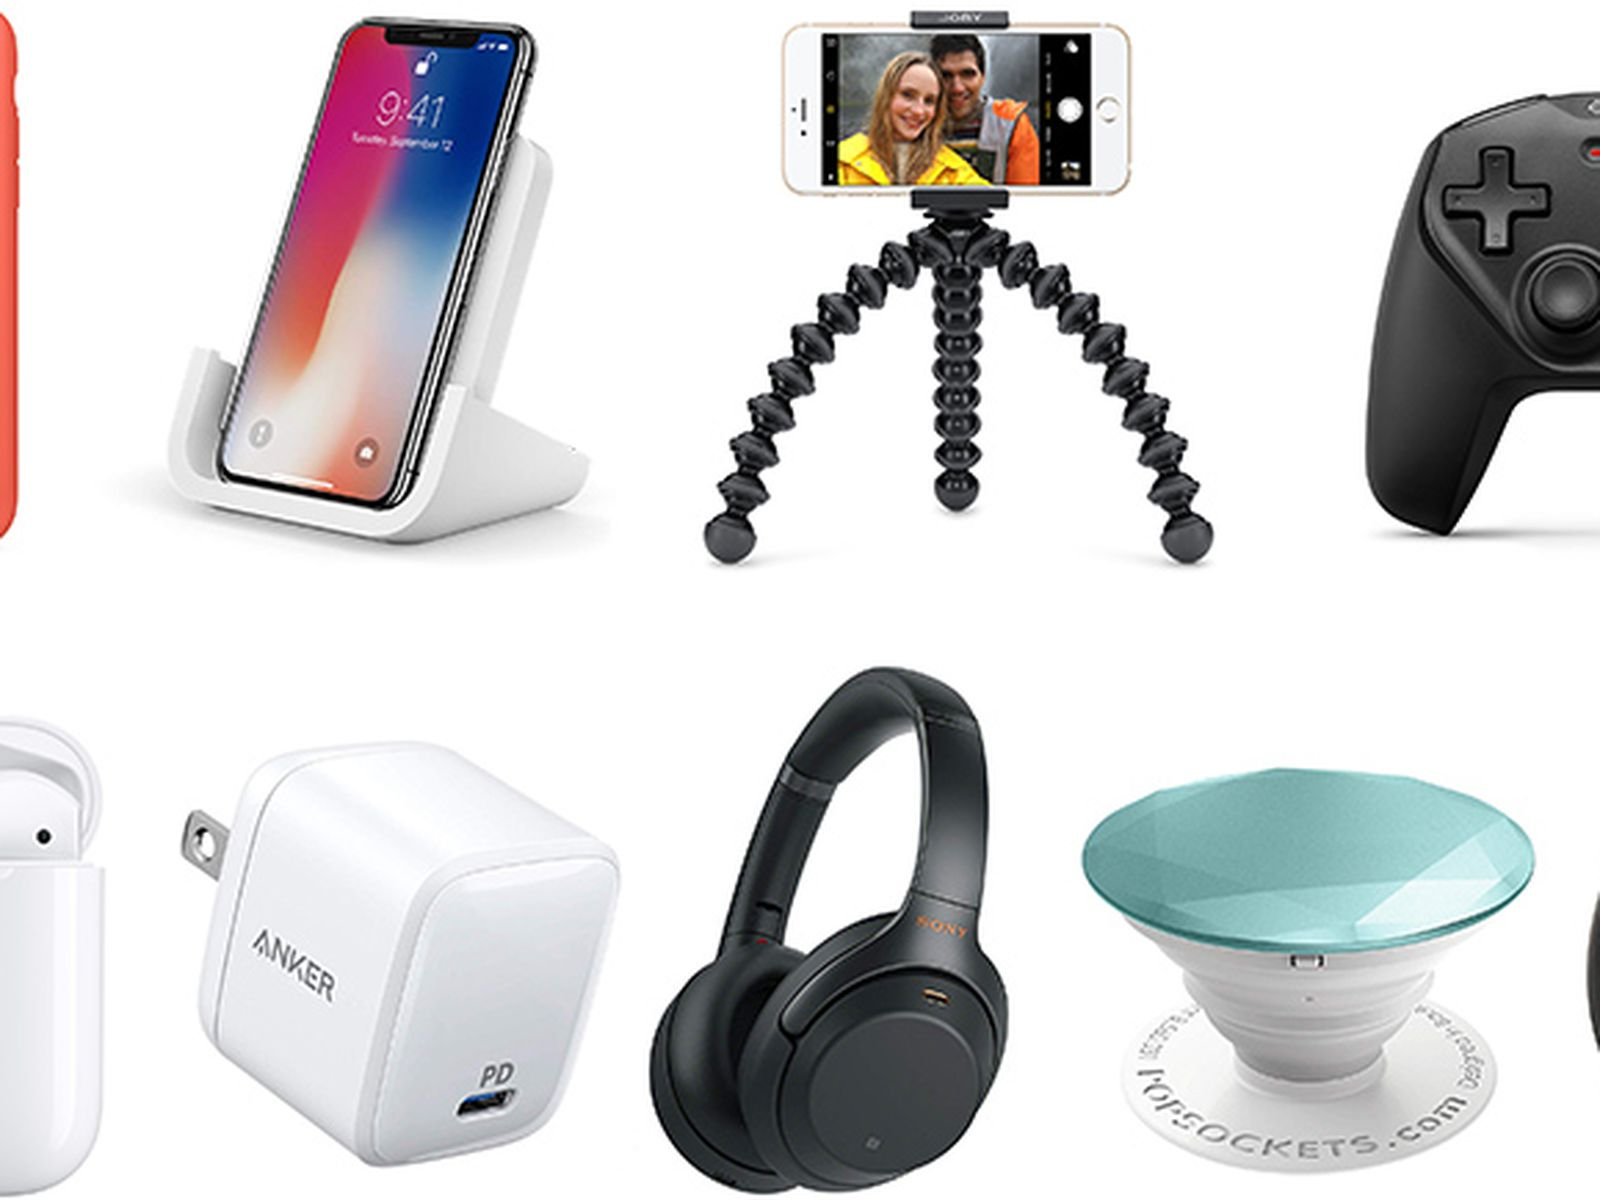 Best Iphone Accessories Our Favorite Picks For 2020 Macrumors